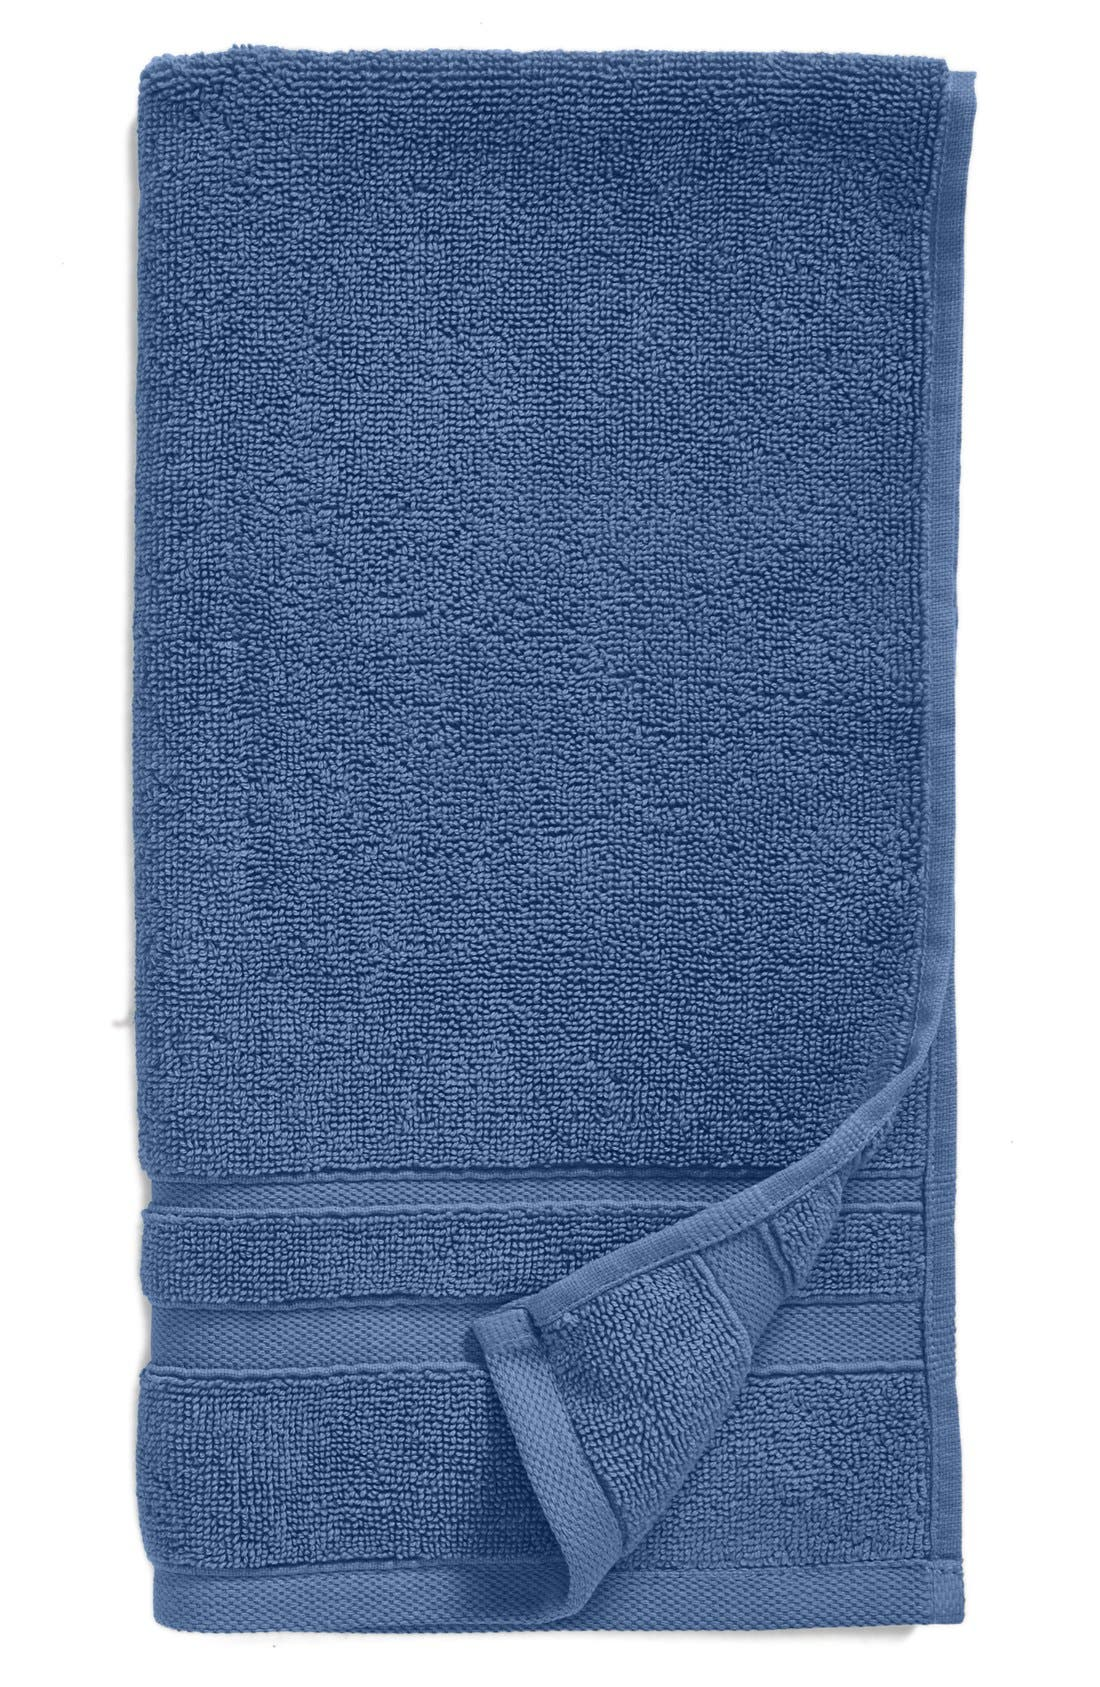 Alternate Image 1 Selected - Waterworks Studio 'Perennial' Combed Turkish Cotton Hand Towel (Online Only)